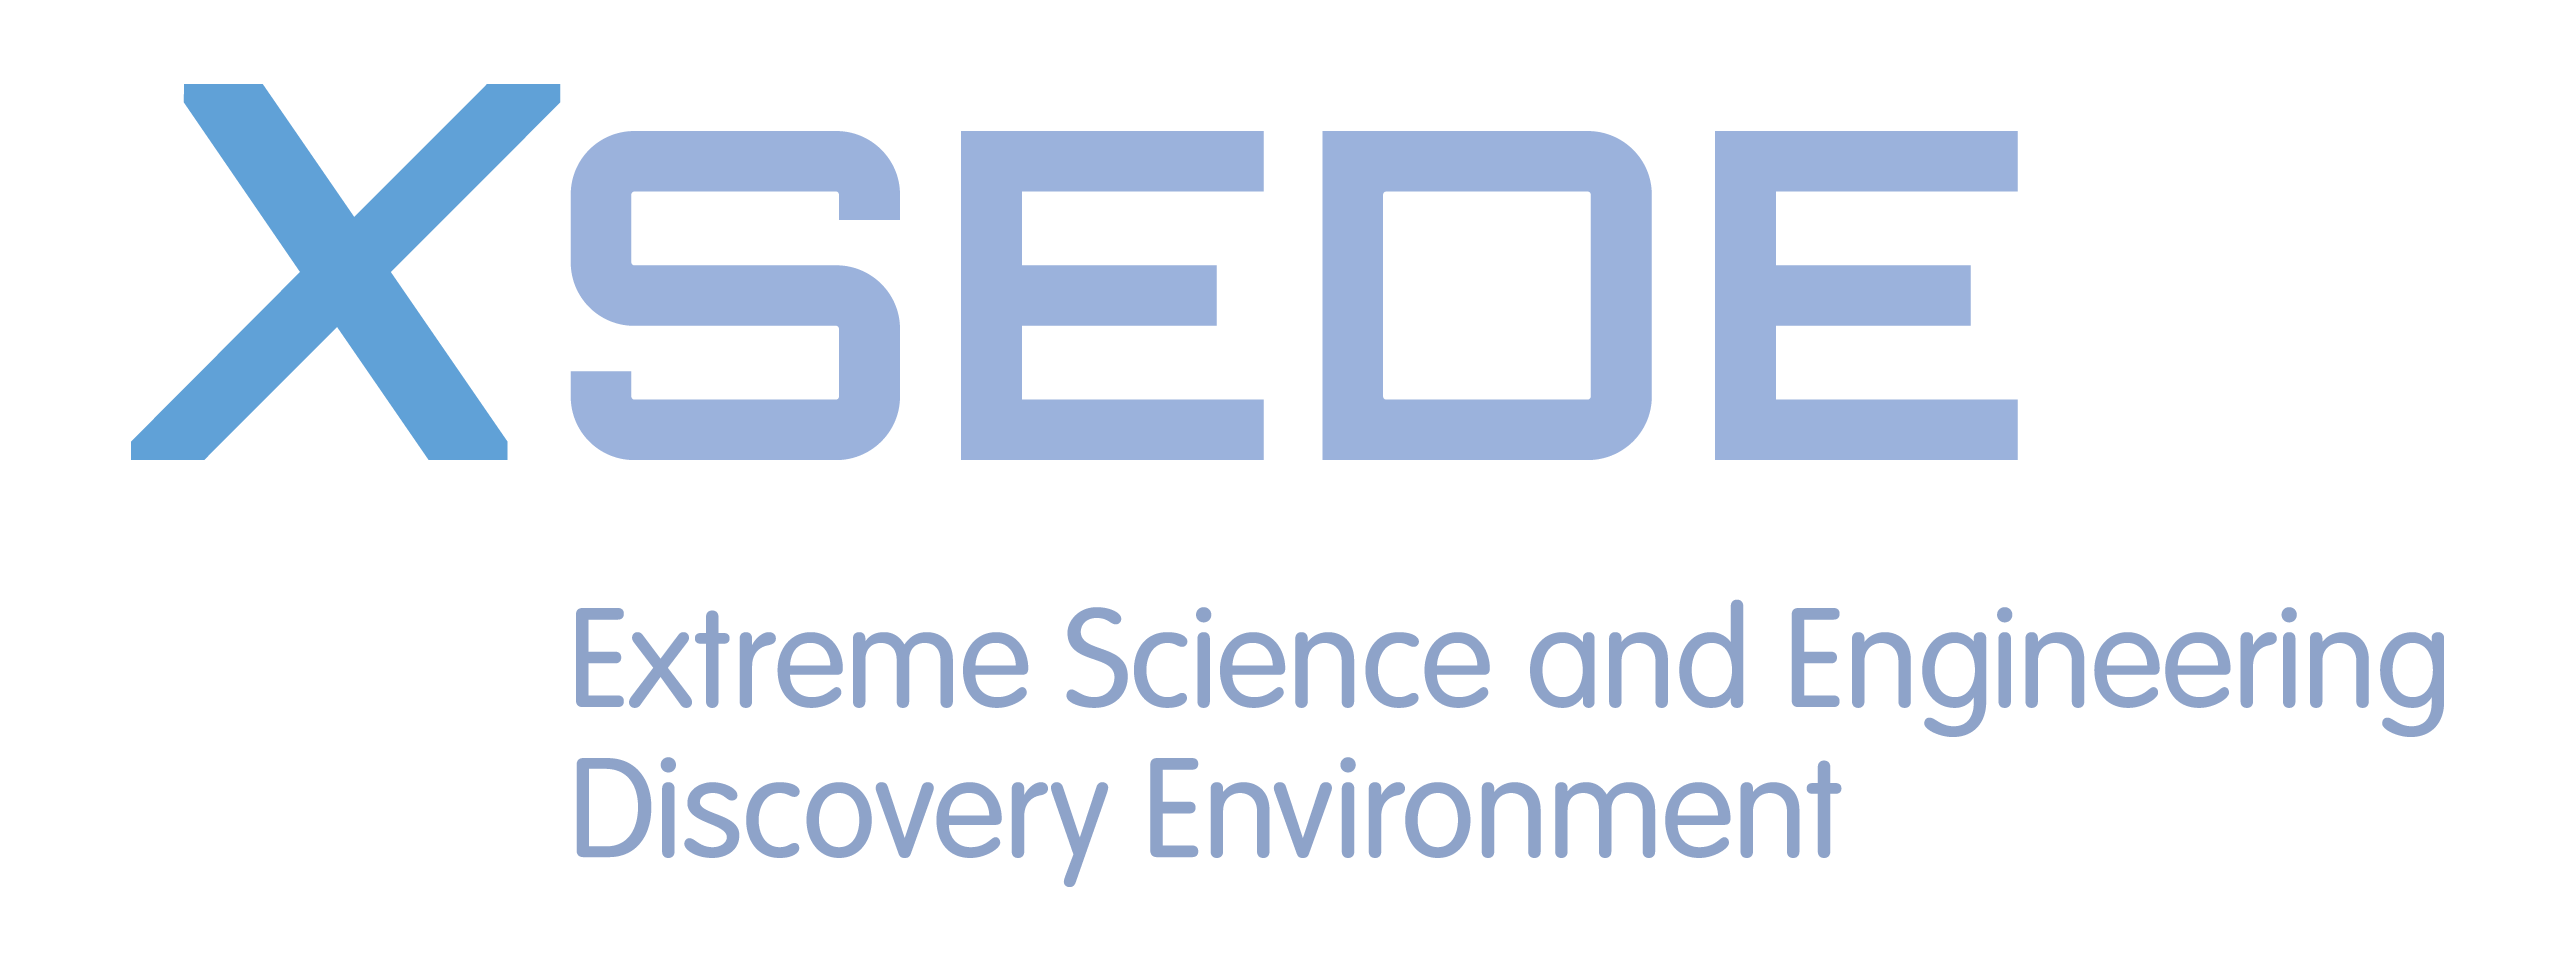 XSEDE Extreme Science and Engineering Discovery Environment